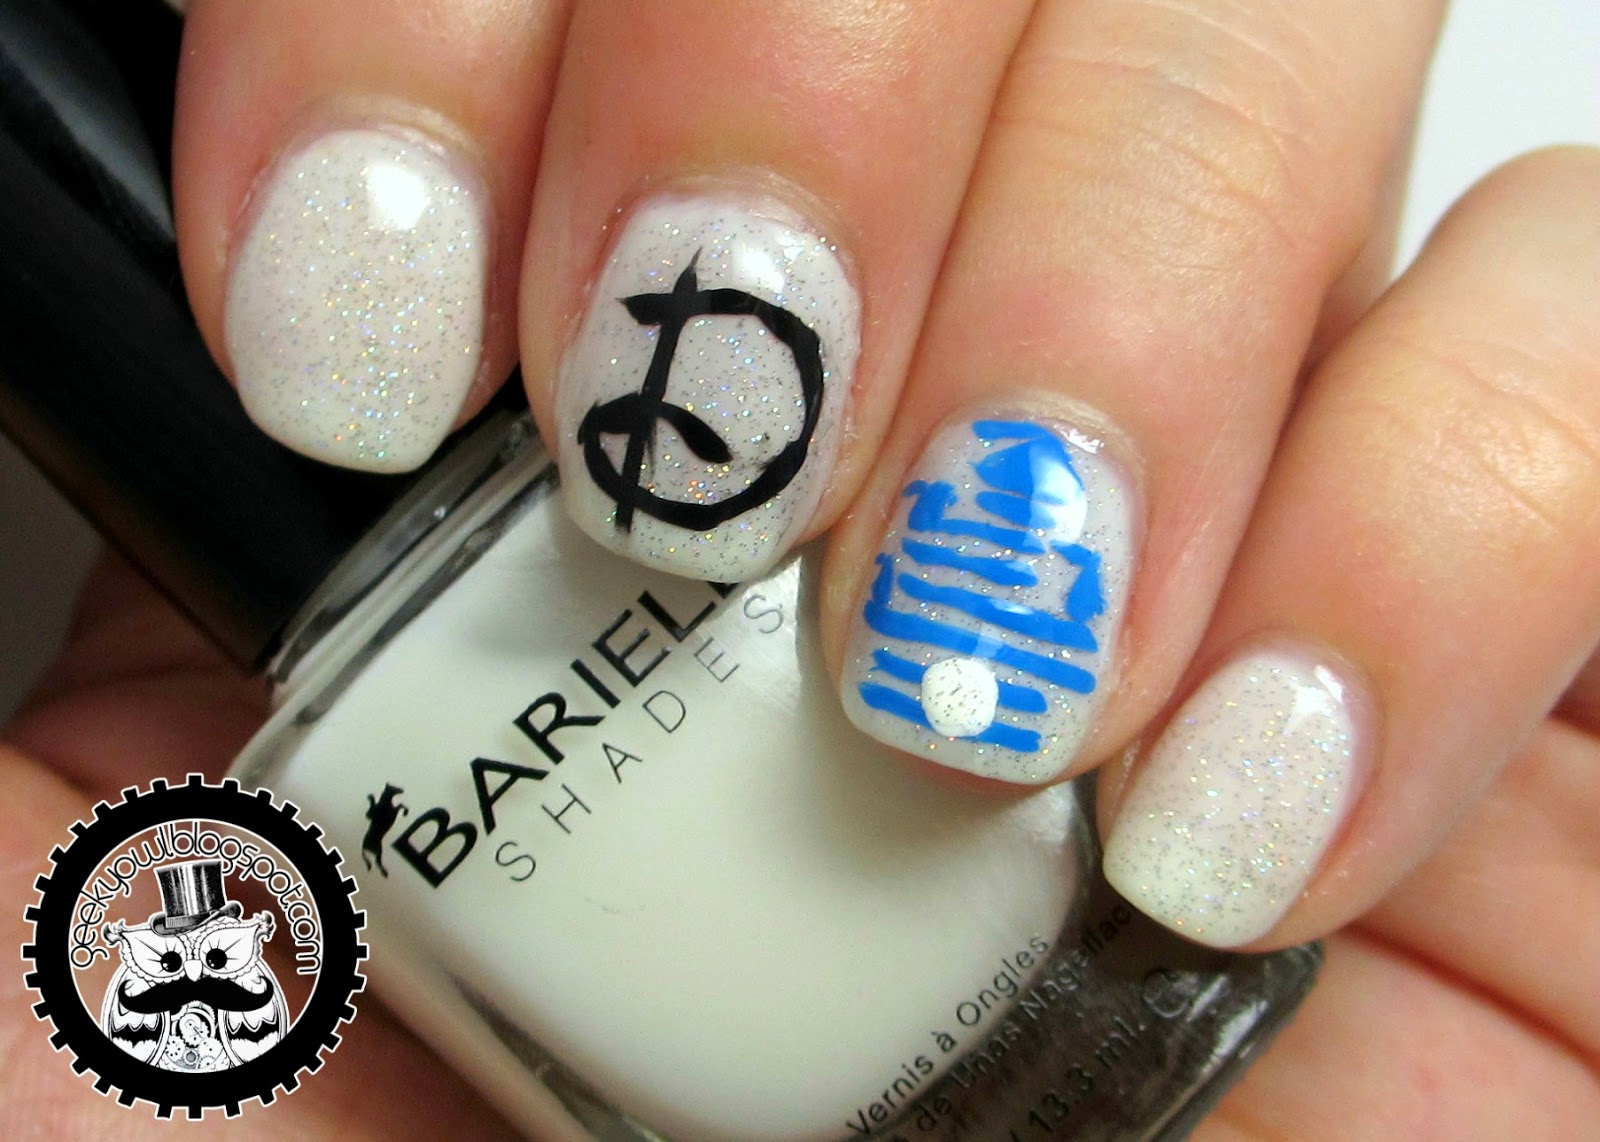 http://geekyowl.blogspot.com/2014/03/the-Easy-Nail-Art-does-brands-week_13.html